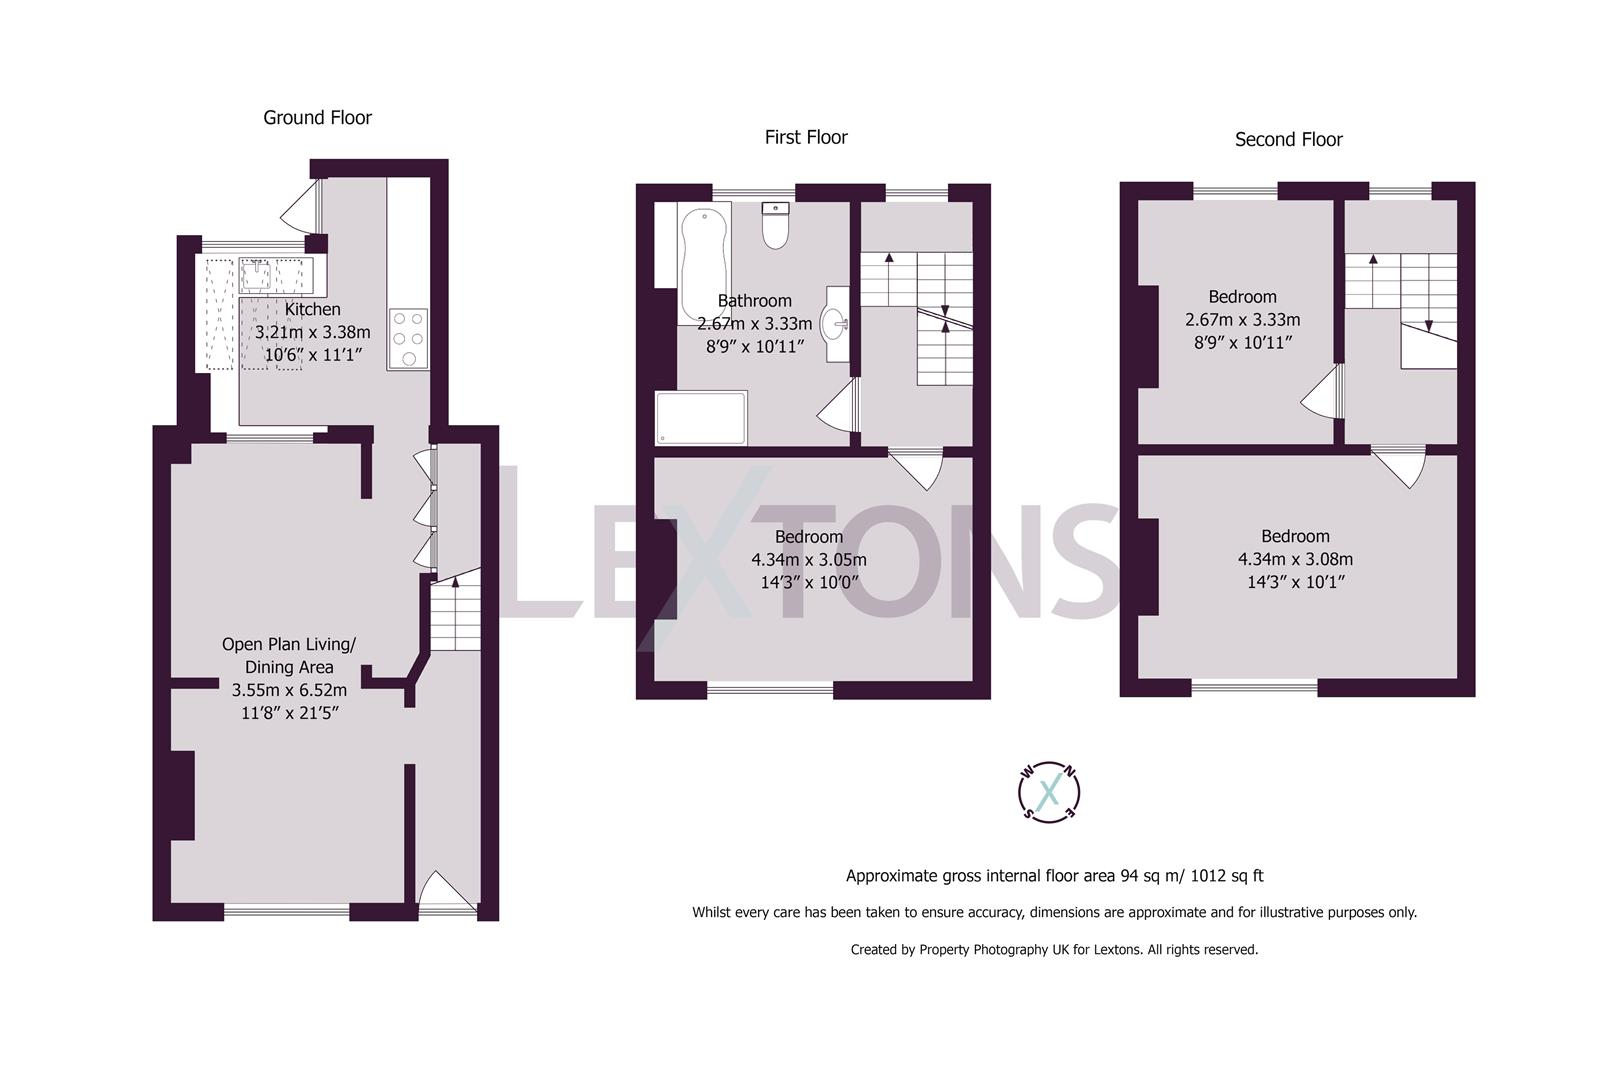 Floorplans For Whichelo Place, Brighton